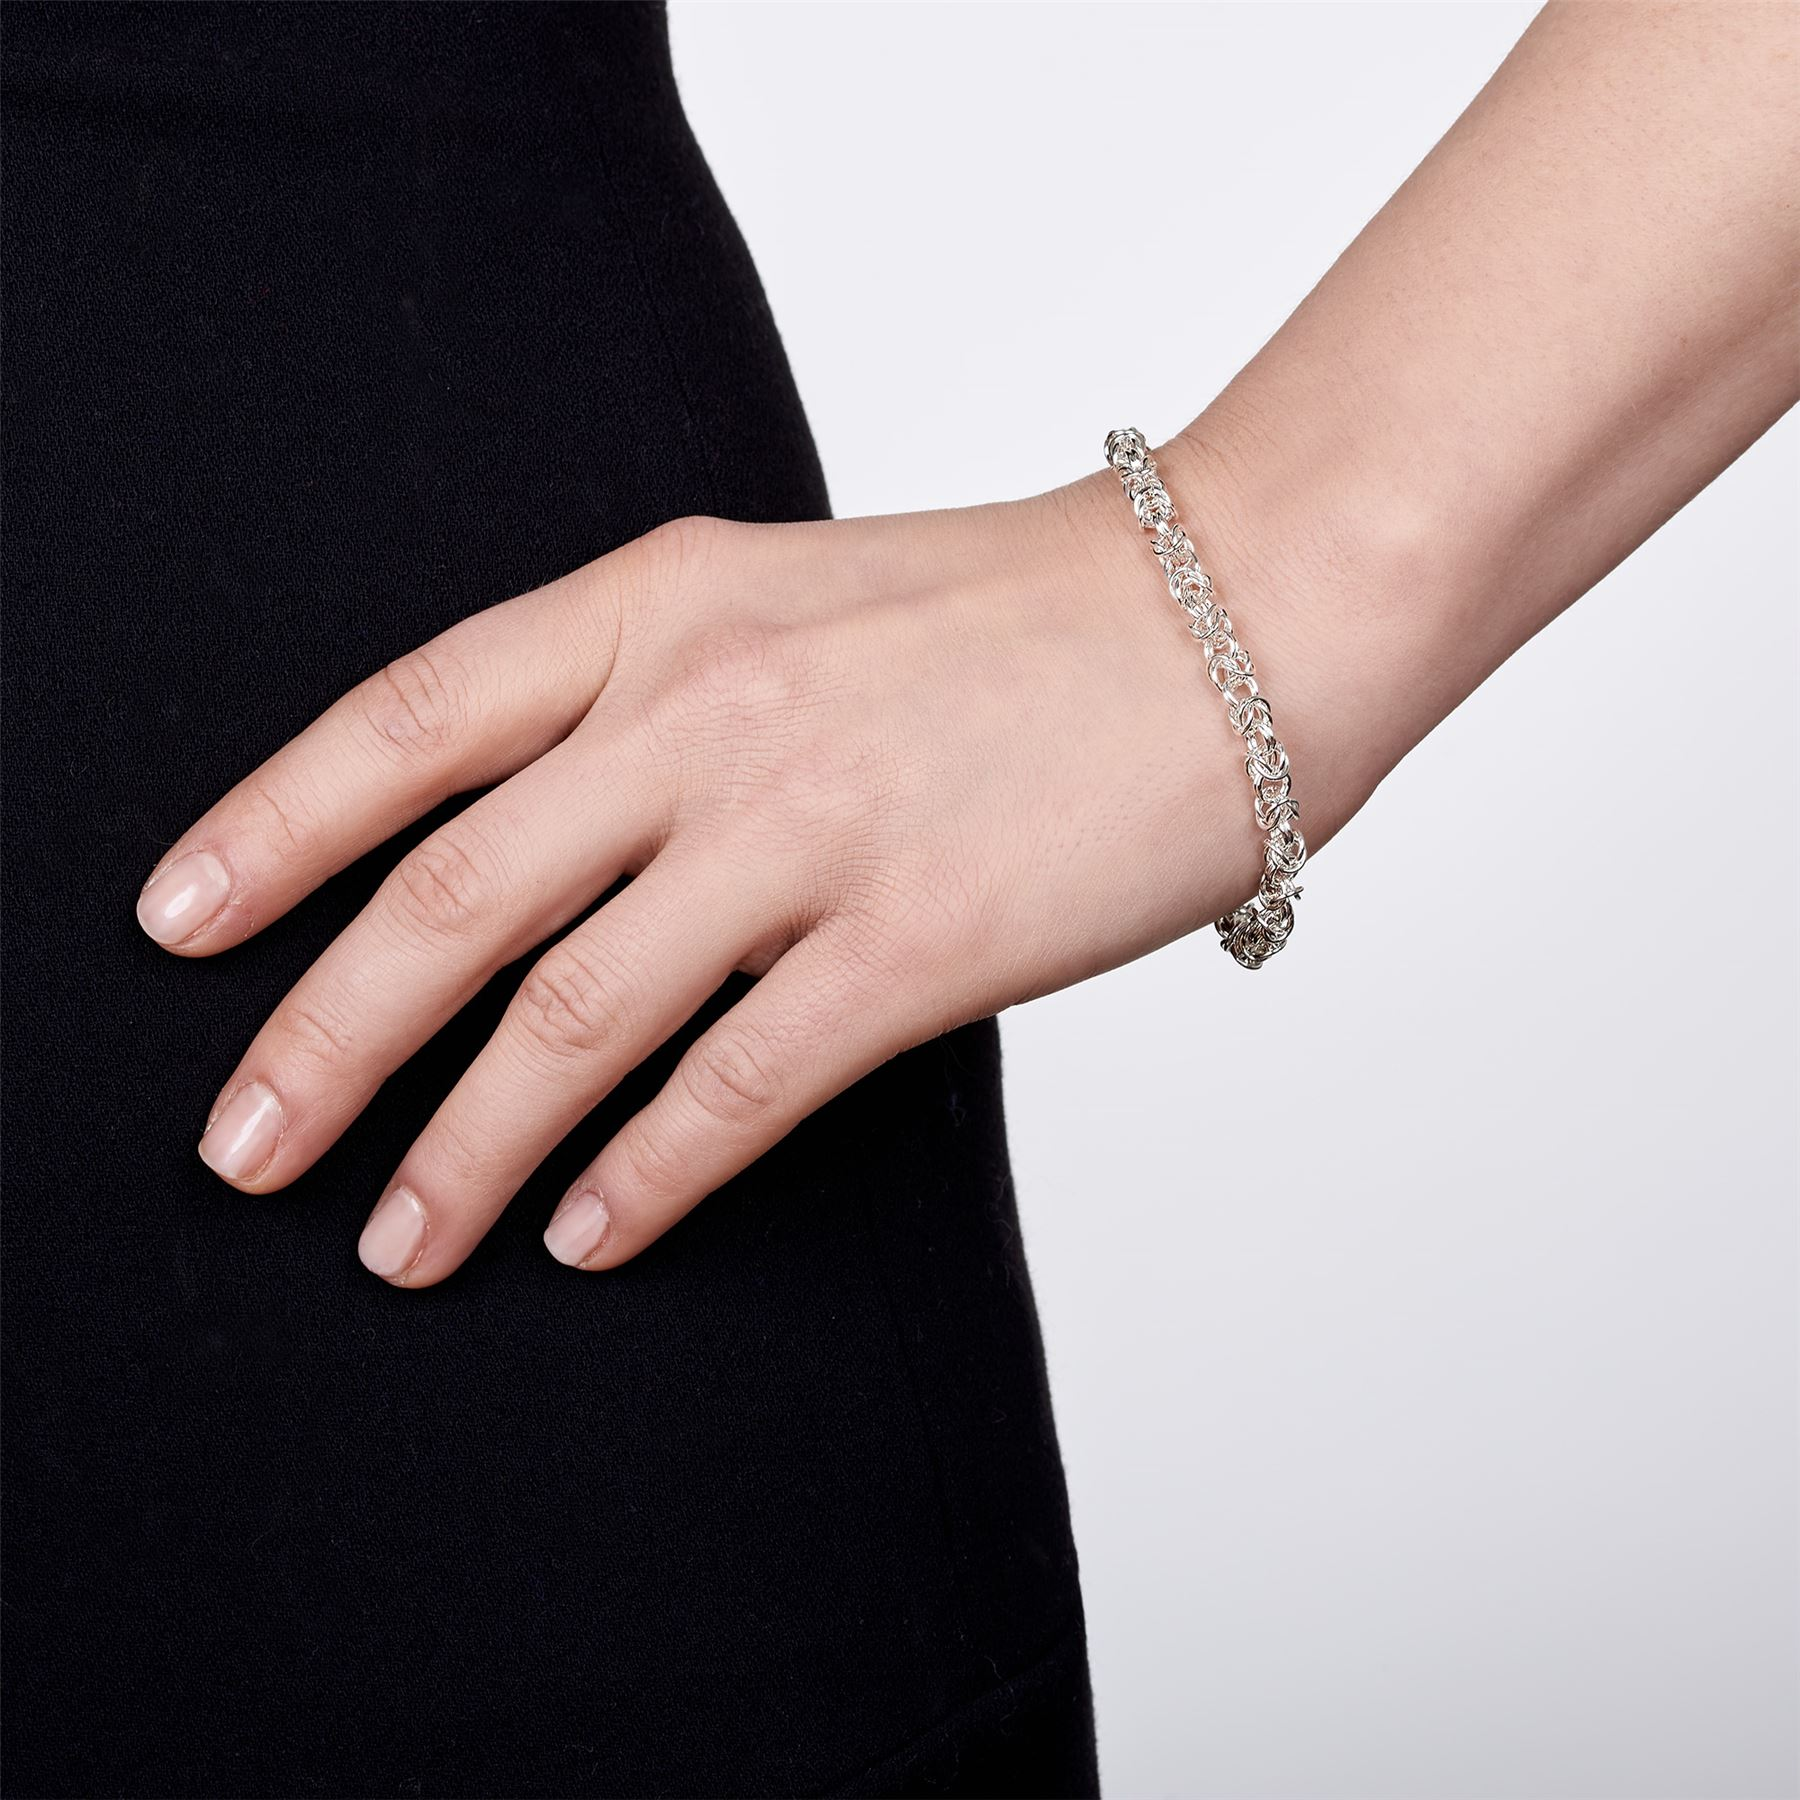 Amberta-Genuine-Real-925-Sterling-Silver-Chain-Bracelet-for-Women-from-Italy miniature 26